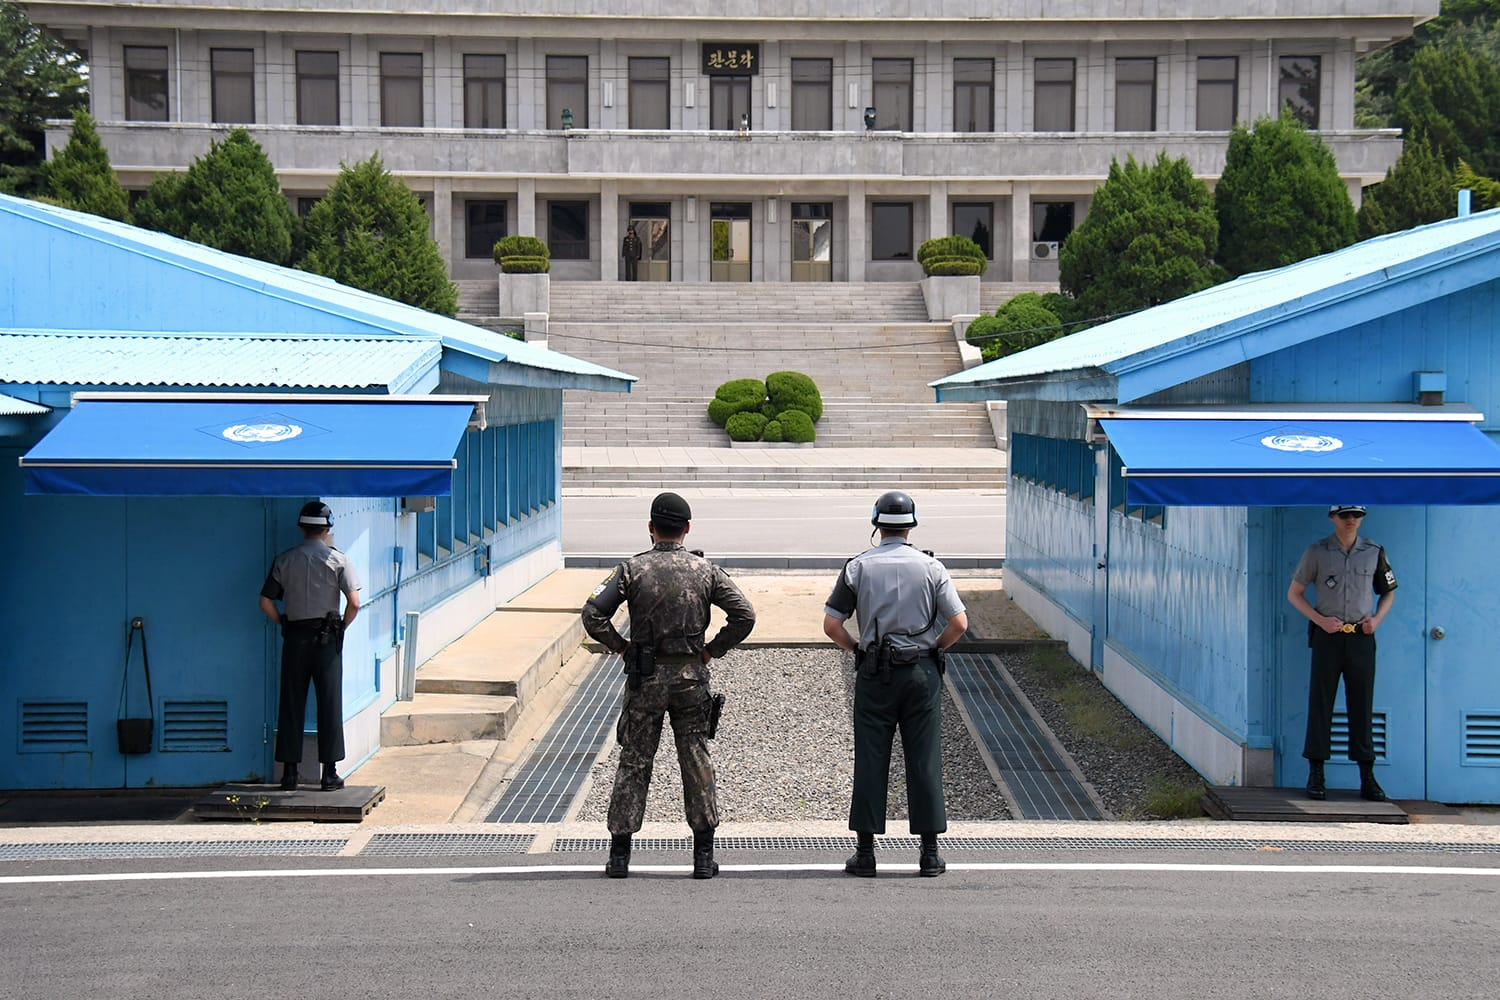 The UN soldiers standing in front of the North Korea office building at Korean Demilitarized Zone, the bolder area between North Korea and South Korea, Panmunjom